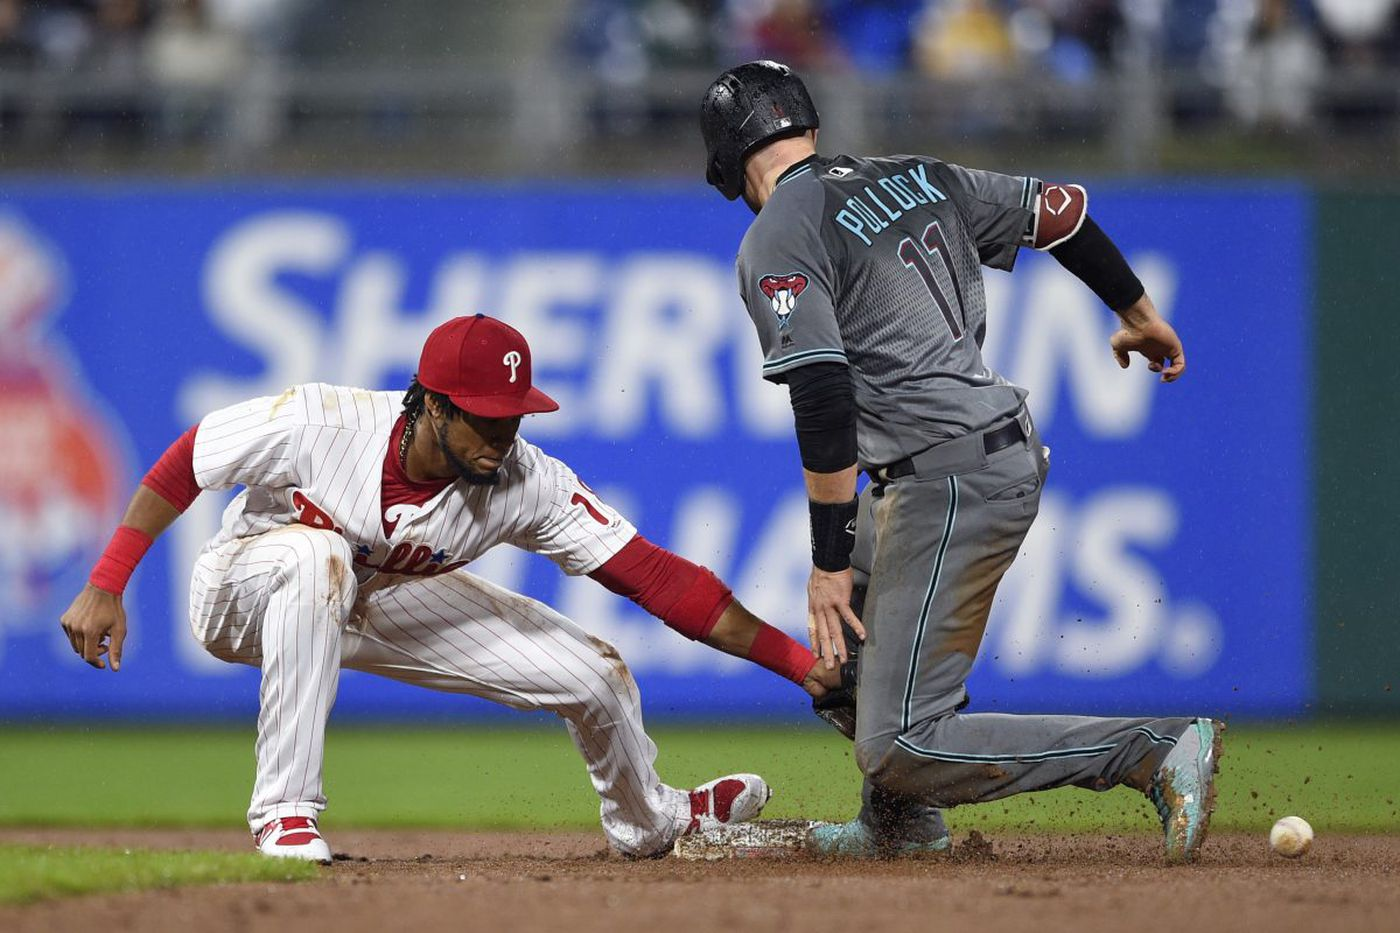 Phillies need some adjusting after loss to D-backs | Extra Innings